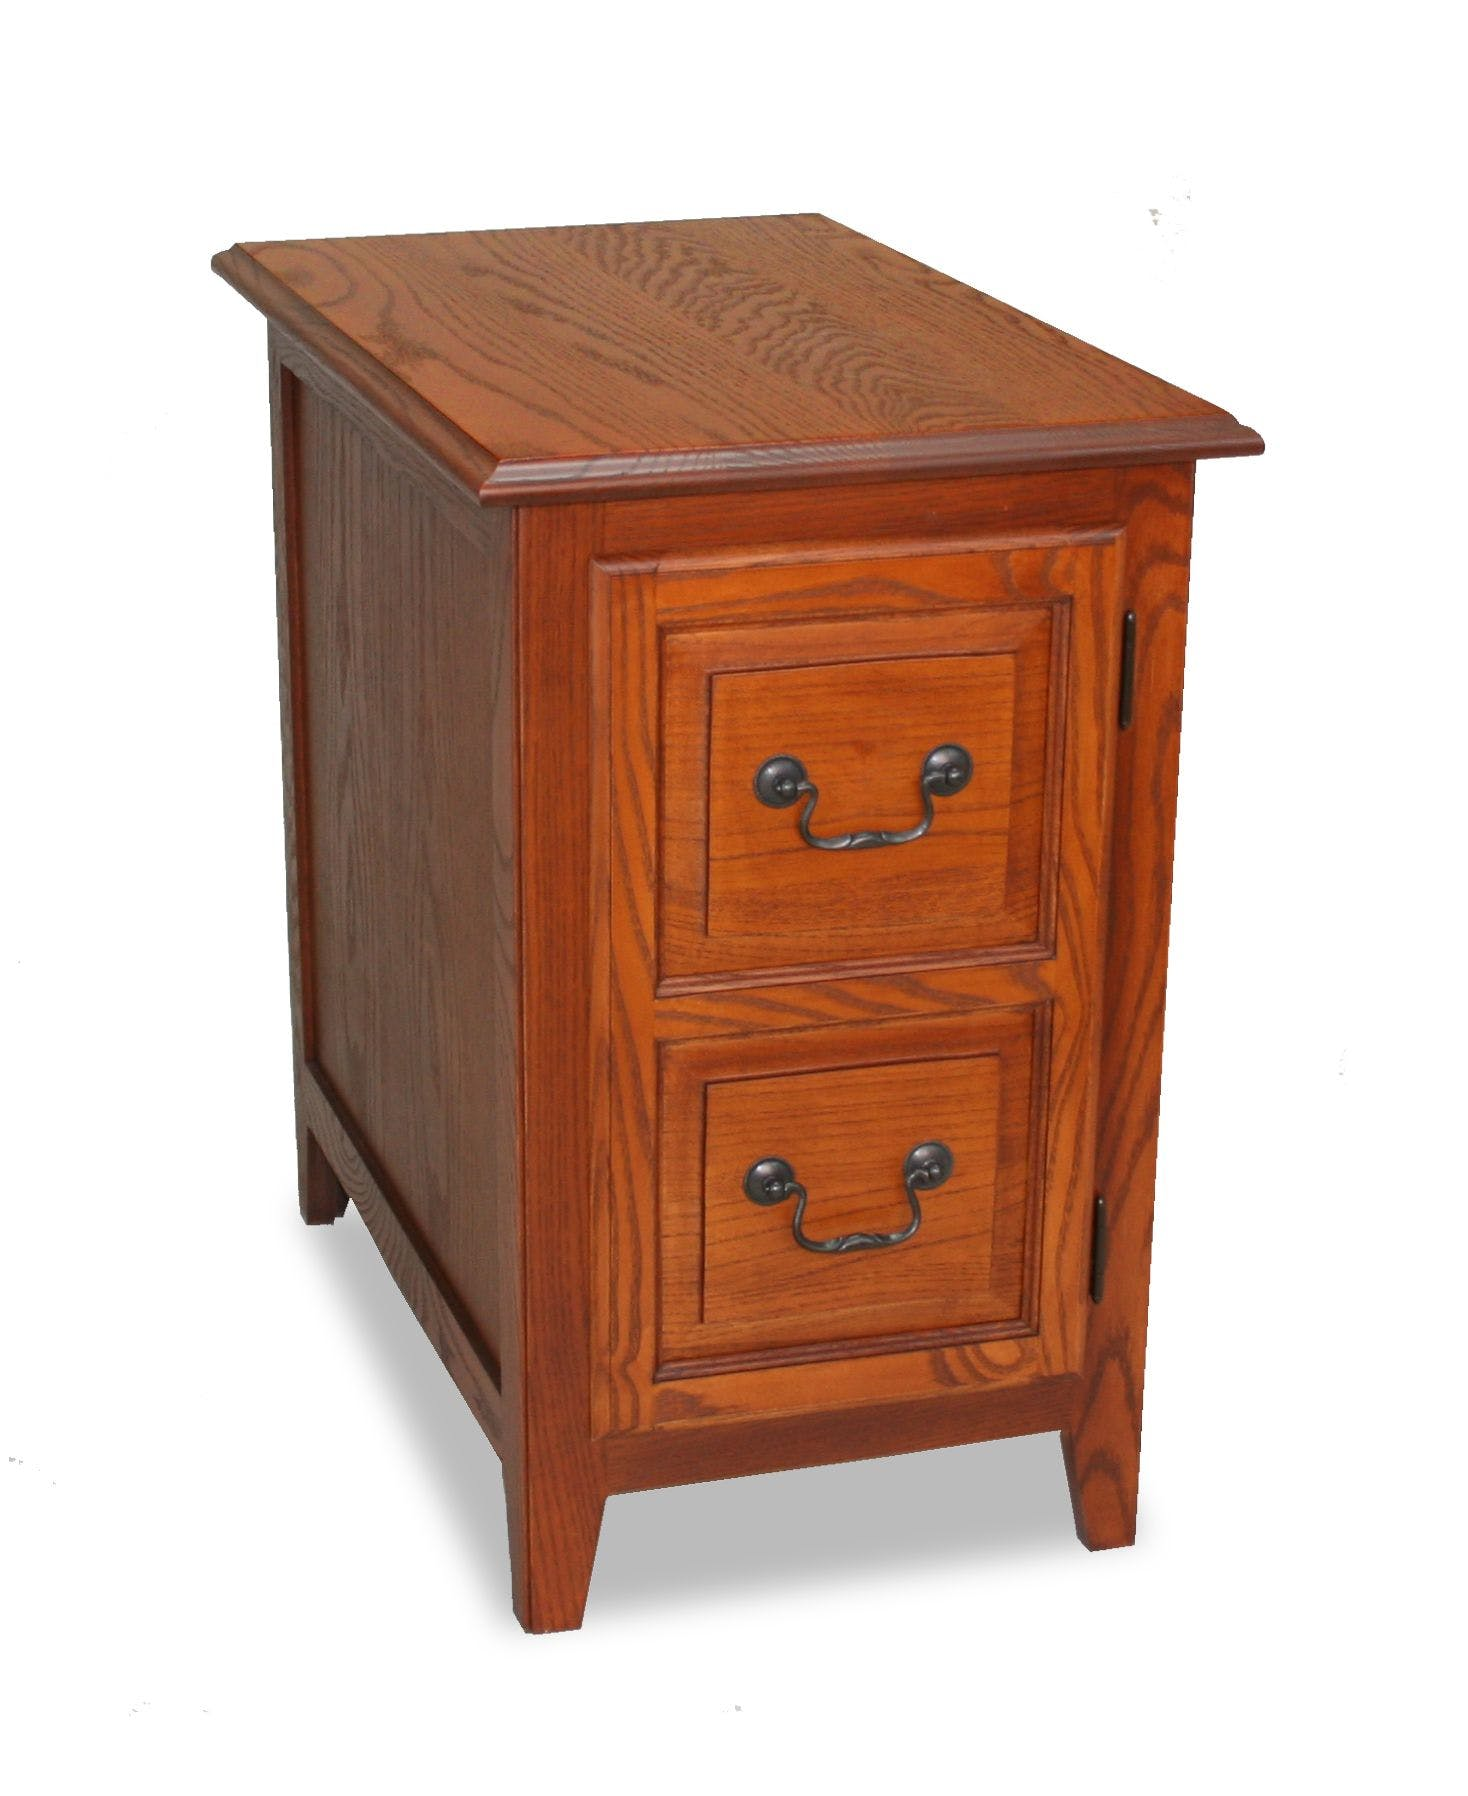 leick furniture shaker medium oak cabinet end table tables stock ture espresso target glass desk cover craigslist black round coffee with storage antique marble top stuff made